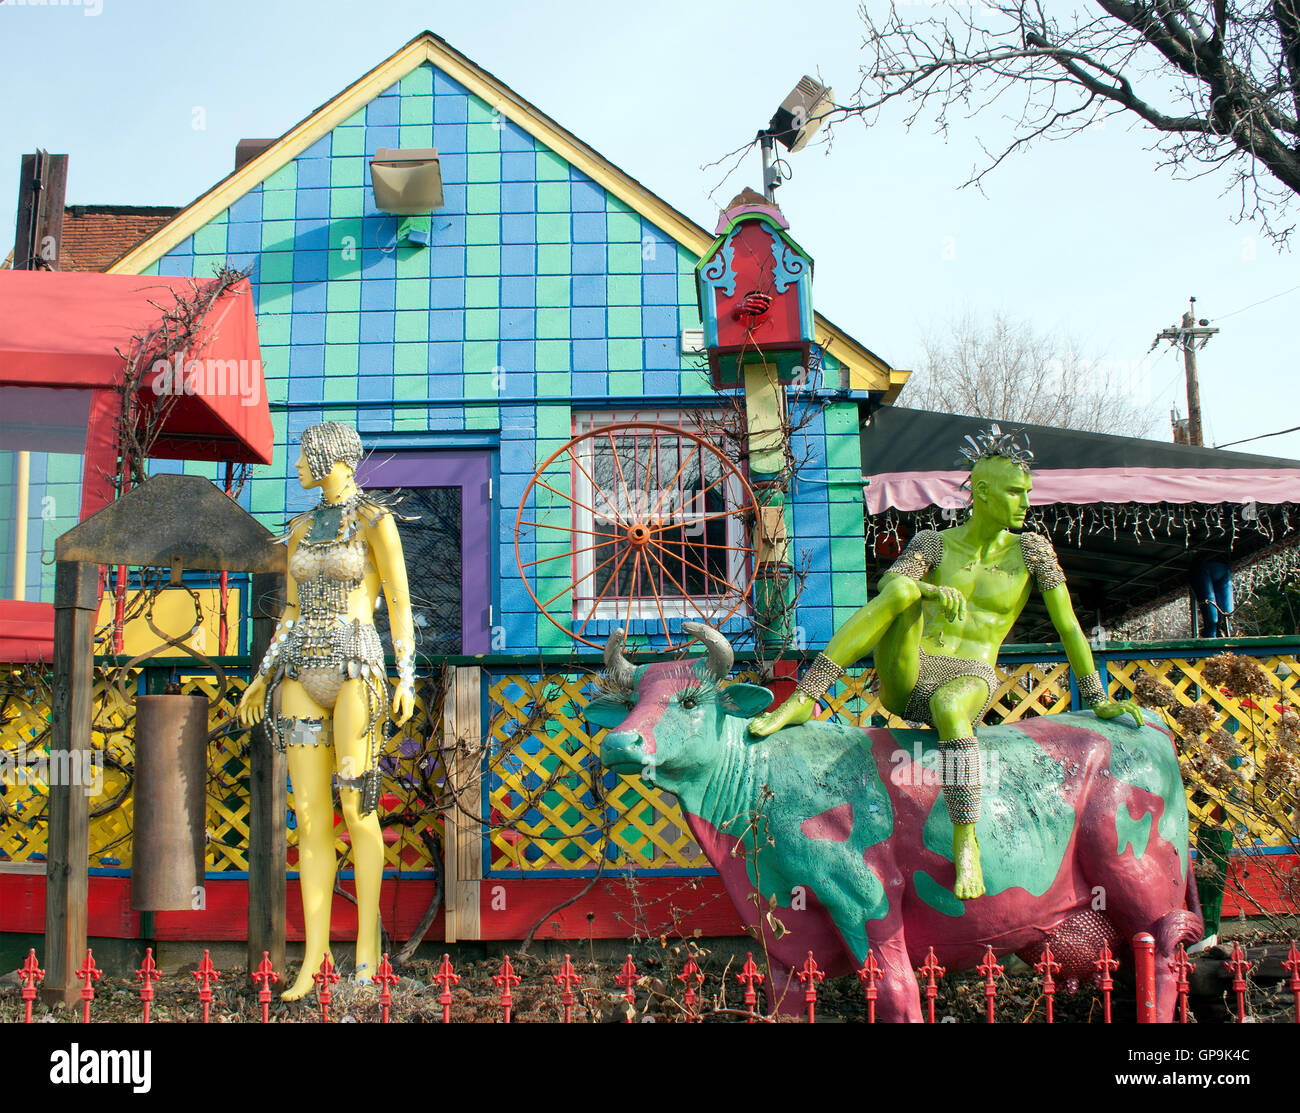 Mannequins at Papermoon Diner in Baltimore Maryland - Stock Image